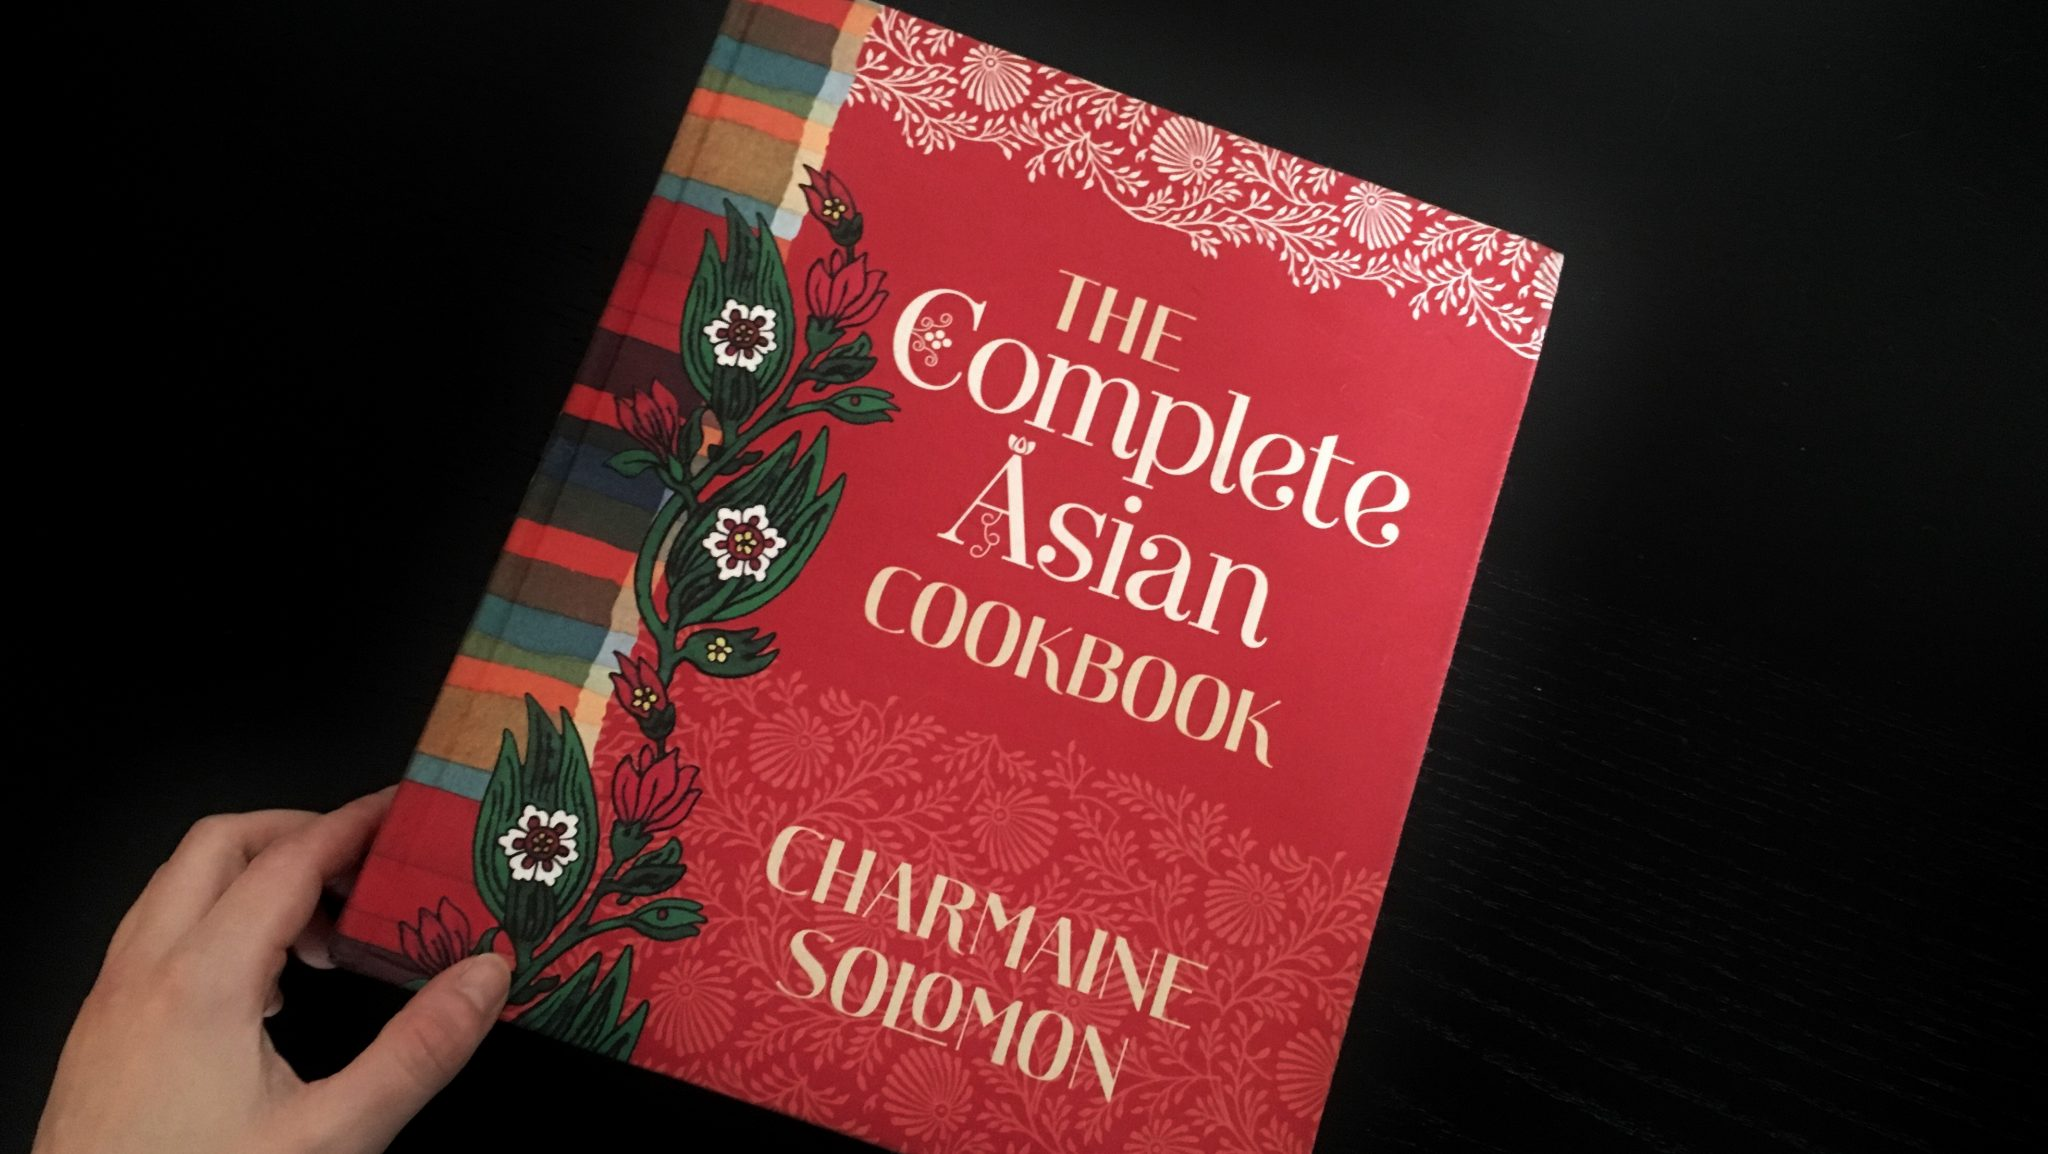 Charmaine Solomon: The Complete Asian Cookbook